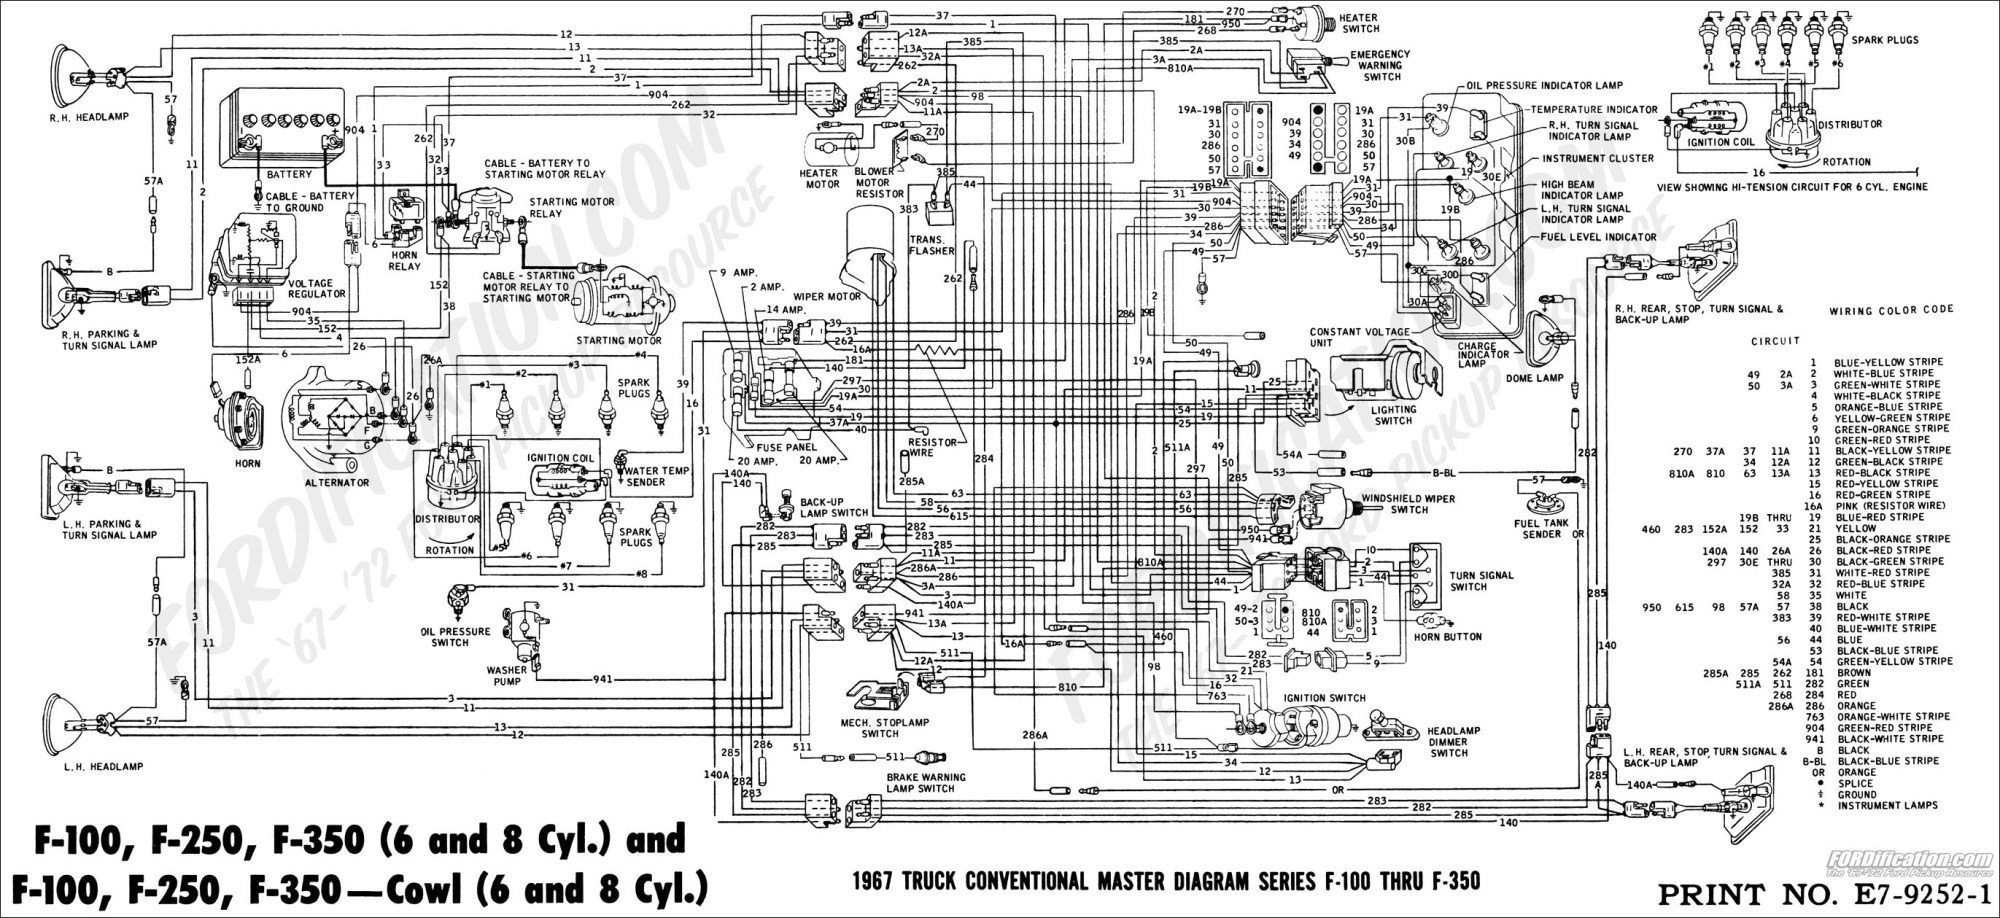 hight resolution of 1979 ford f 150 5 0 engine diagram wiring diagram sort 1989 ford f 150 5 0 engine diagram